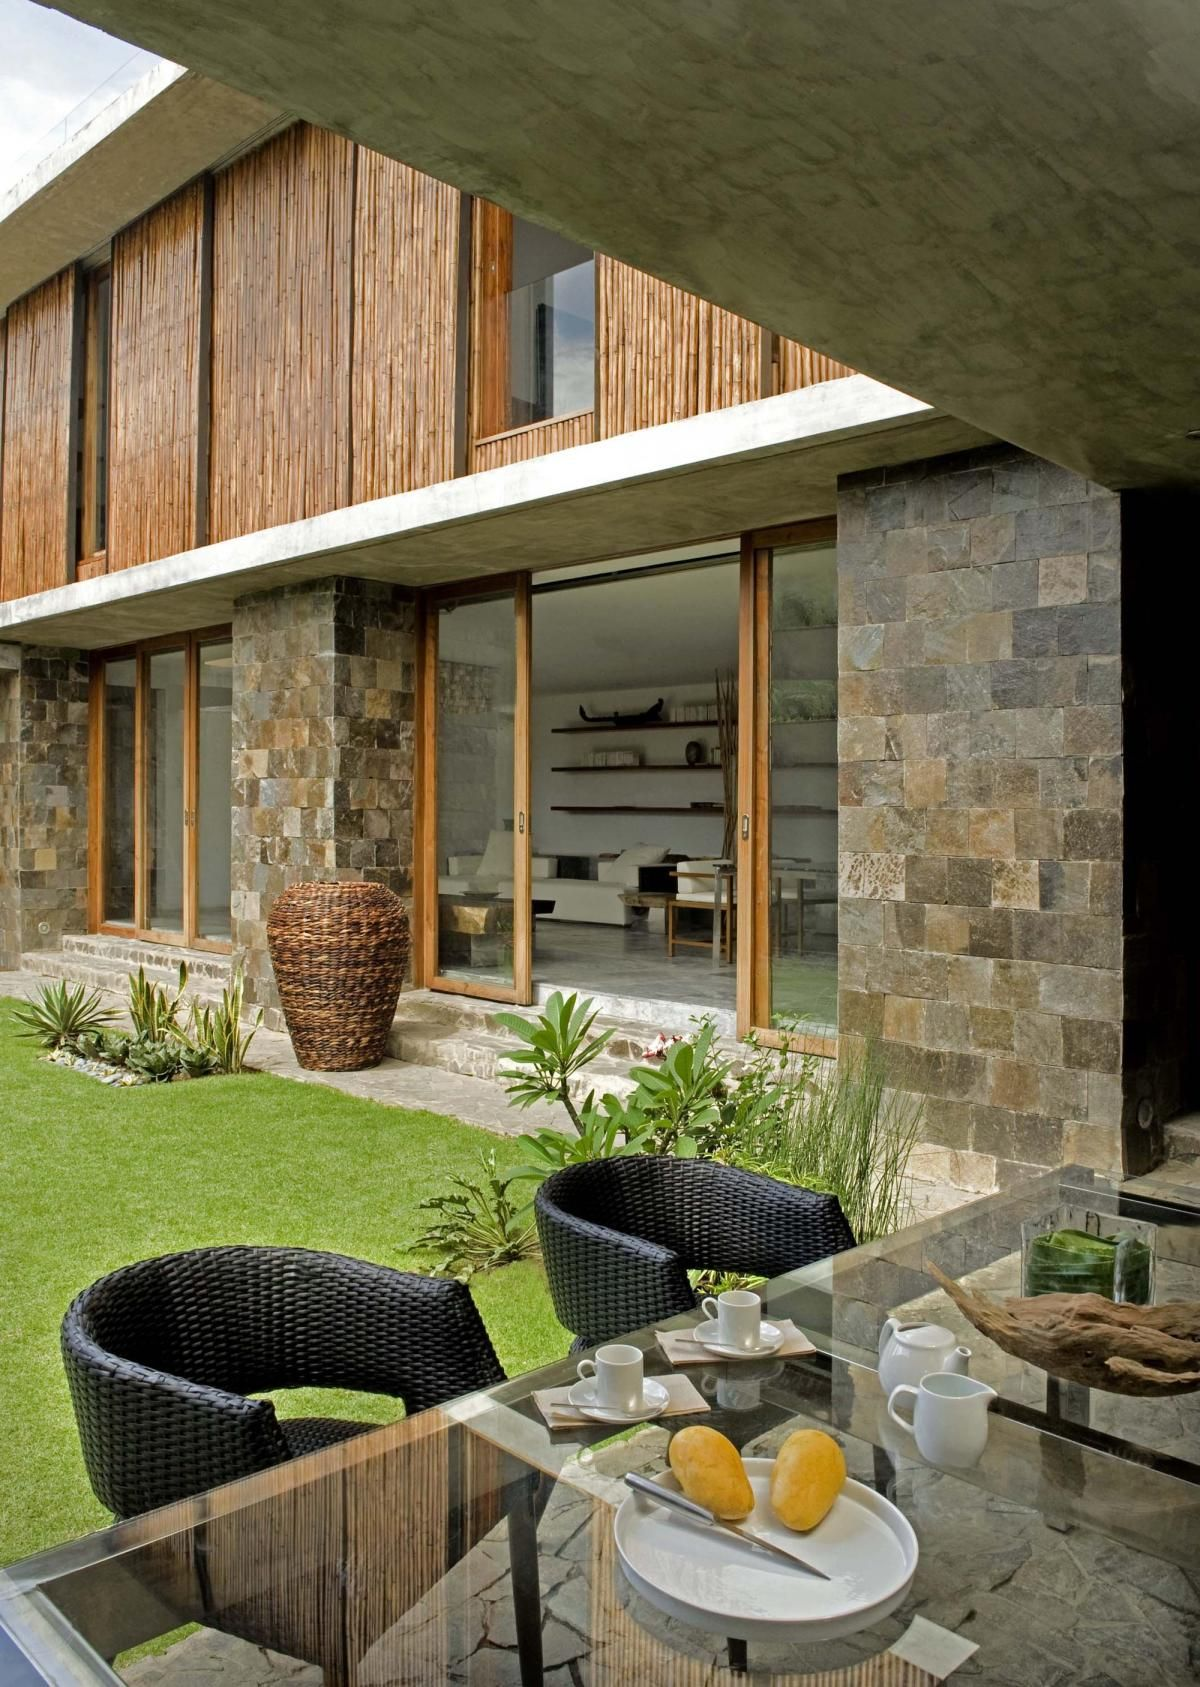 Sumptuous Wall Decoration with Natural Stones as Interesting French CountryHome Design Exterior Colored in White